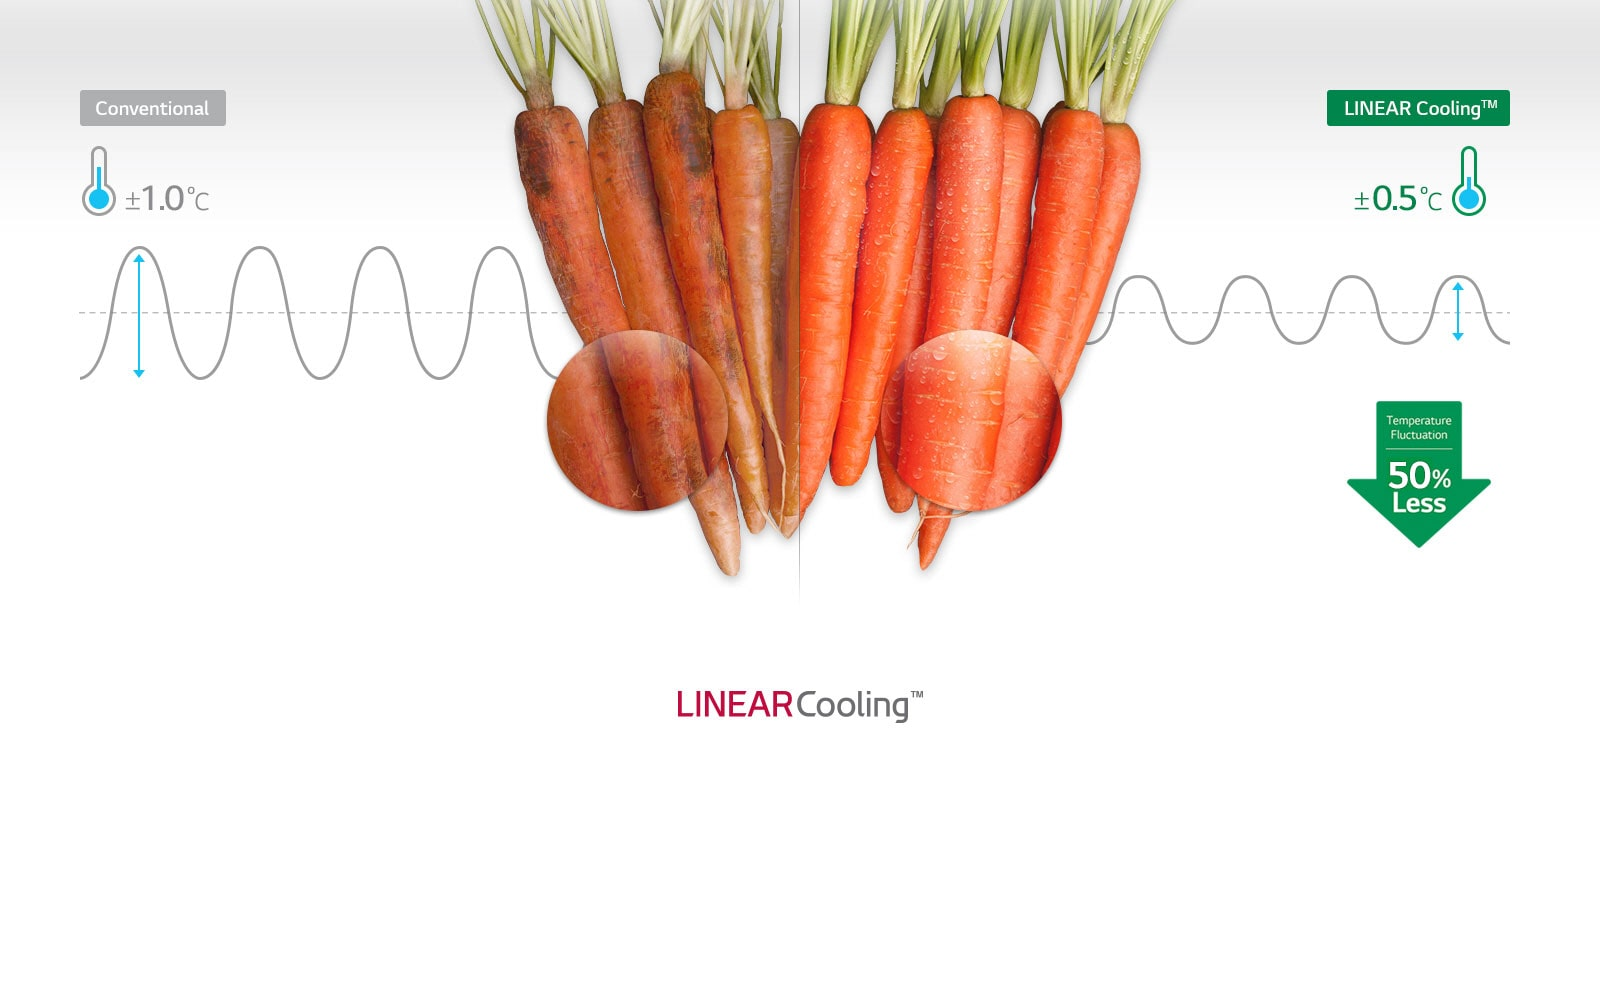 LINEAR Cooling™